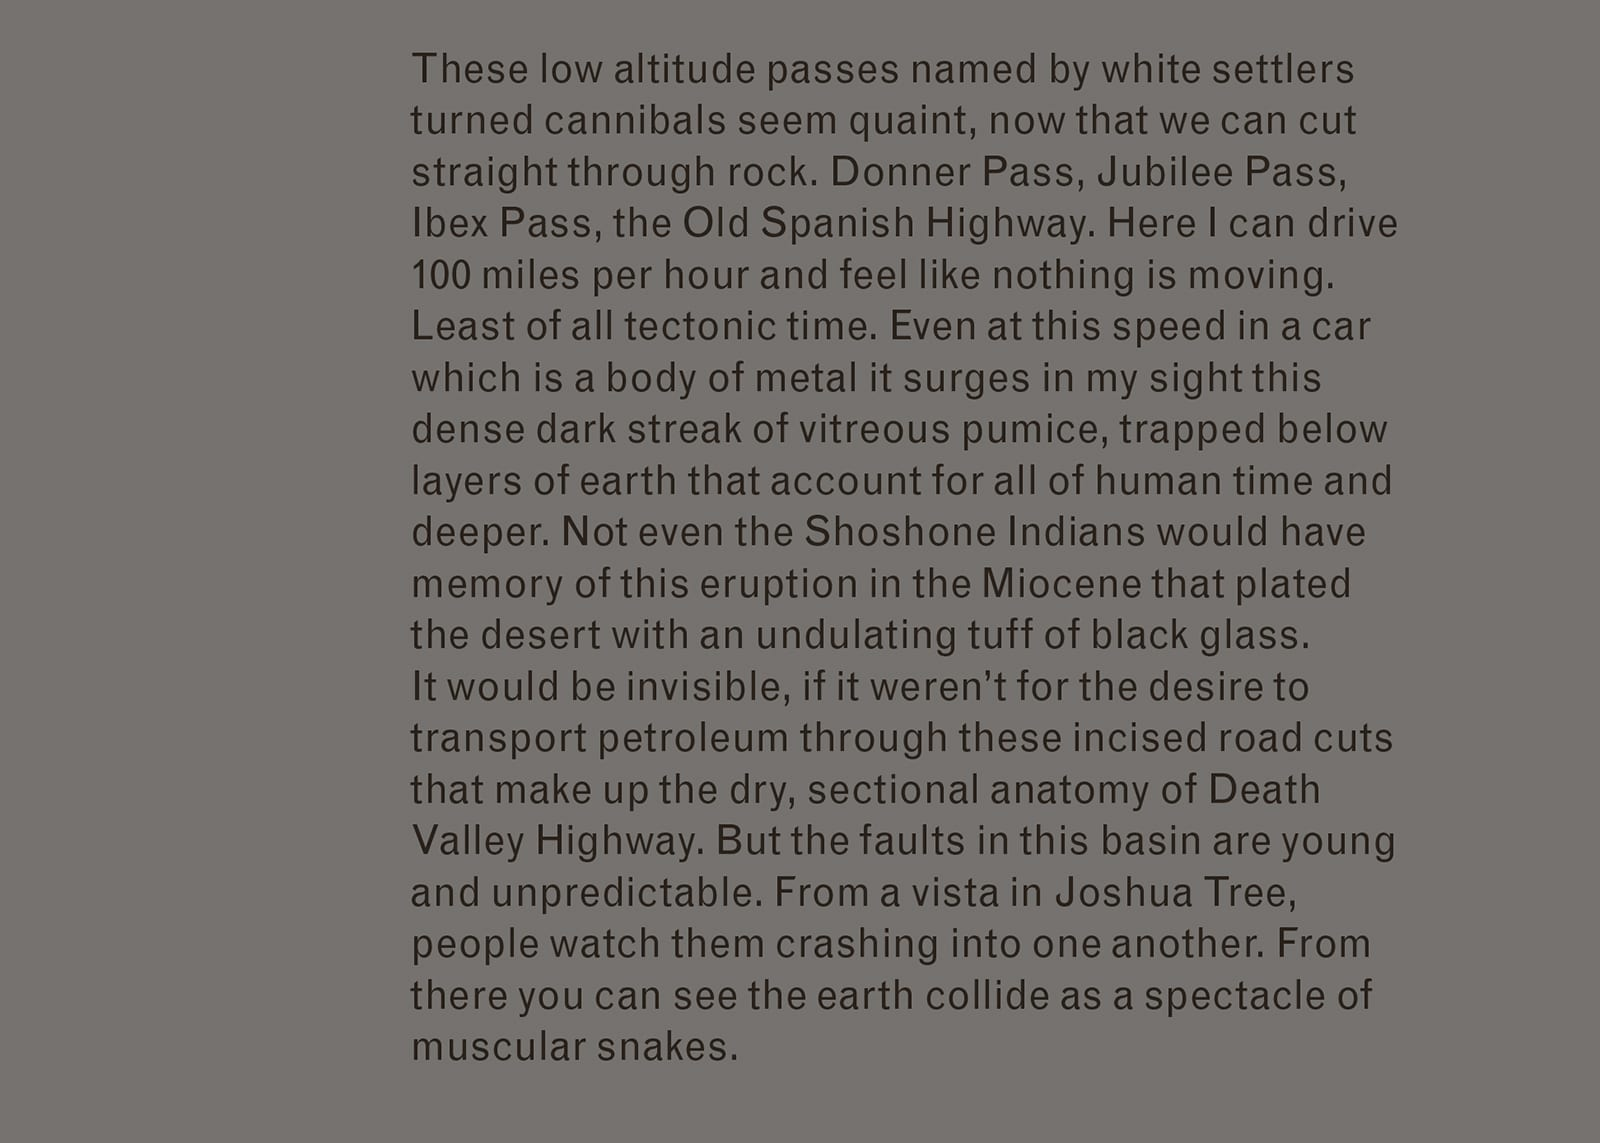 Excerpt of text from Imaginary Explosions. Text reads: These low altitude passes named by white settlers turned cannibals seem quaint, now that we can cut straight through rock. Donner Pass, Jubilee Pass, Ibex Pass, the Old Spanish Highway. Here I can drive 100 miles per hour and feel like nothing is moving. Least of all tectonic time. Even at this speed in a car which is a body of metal it surges in my sight this dense dark streak of vitreous pumice, trapped below layers of earth that account for all of human time and deeper. Not even the Shoshone Indians would have memory of this eruption in the Miocene that plated the desert with an undulating tuff of black glass. It would be invisible, if it weren't for the desire to transport petroleum through these incised road cuts that make up the dry, sectional anatomy of Death Valley Highway. But the faults in this basin are young and unpredictable. From a vista in Joshua Tree, people watch them crashing into one another. From there you can see the earth collide as a spectacle of muscular snakes.